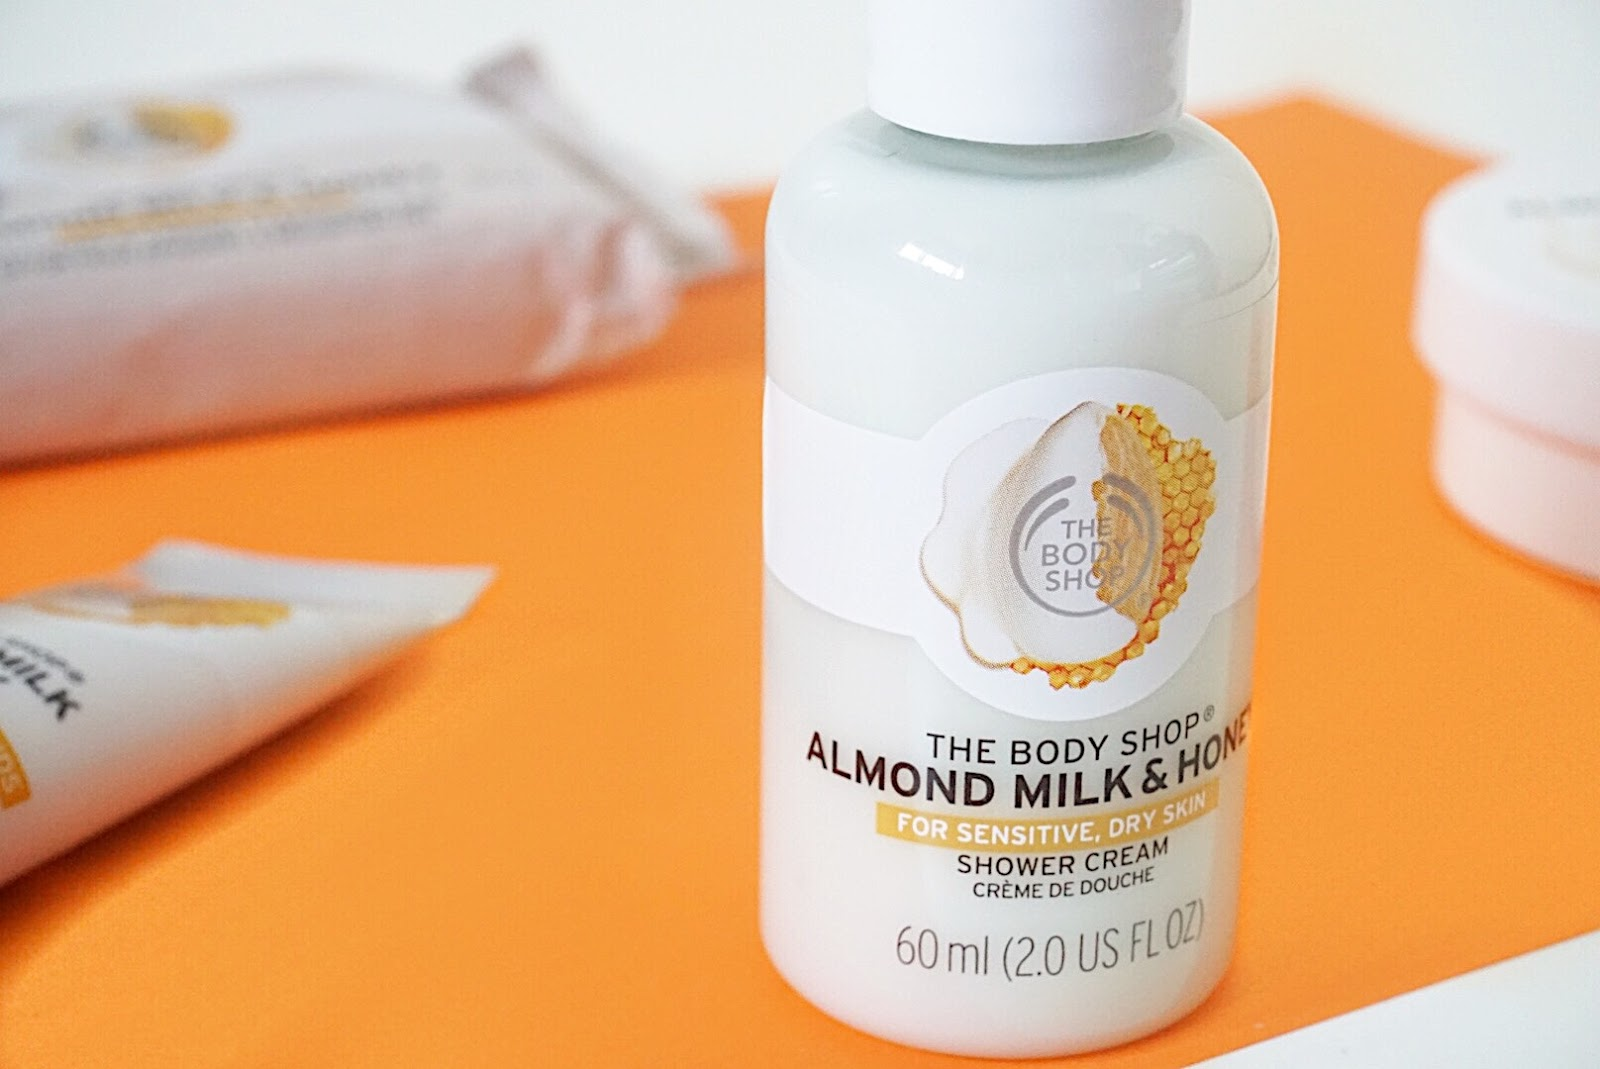 The Body Shop Almond Milk & Honey Shower Cream